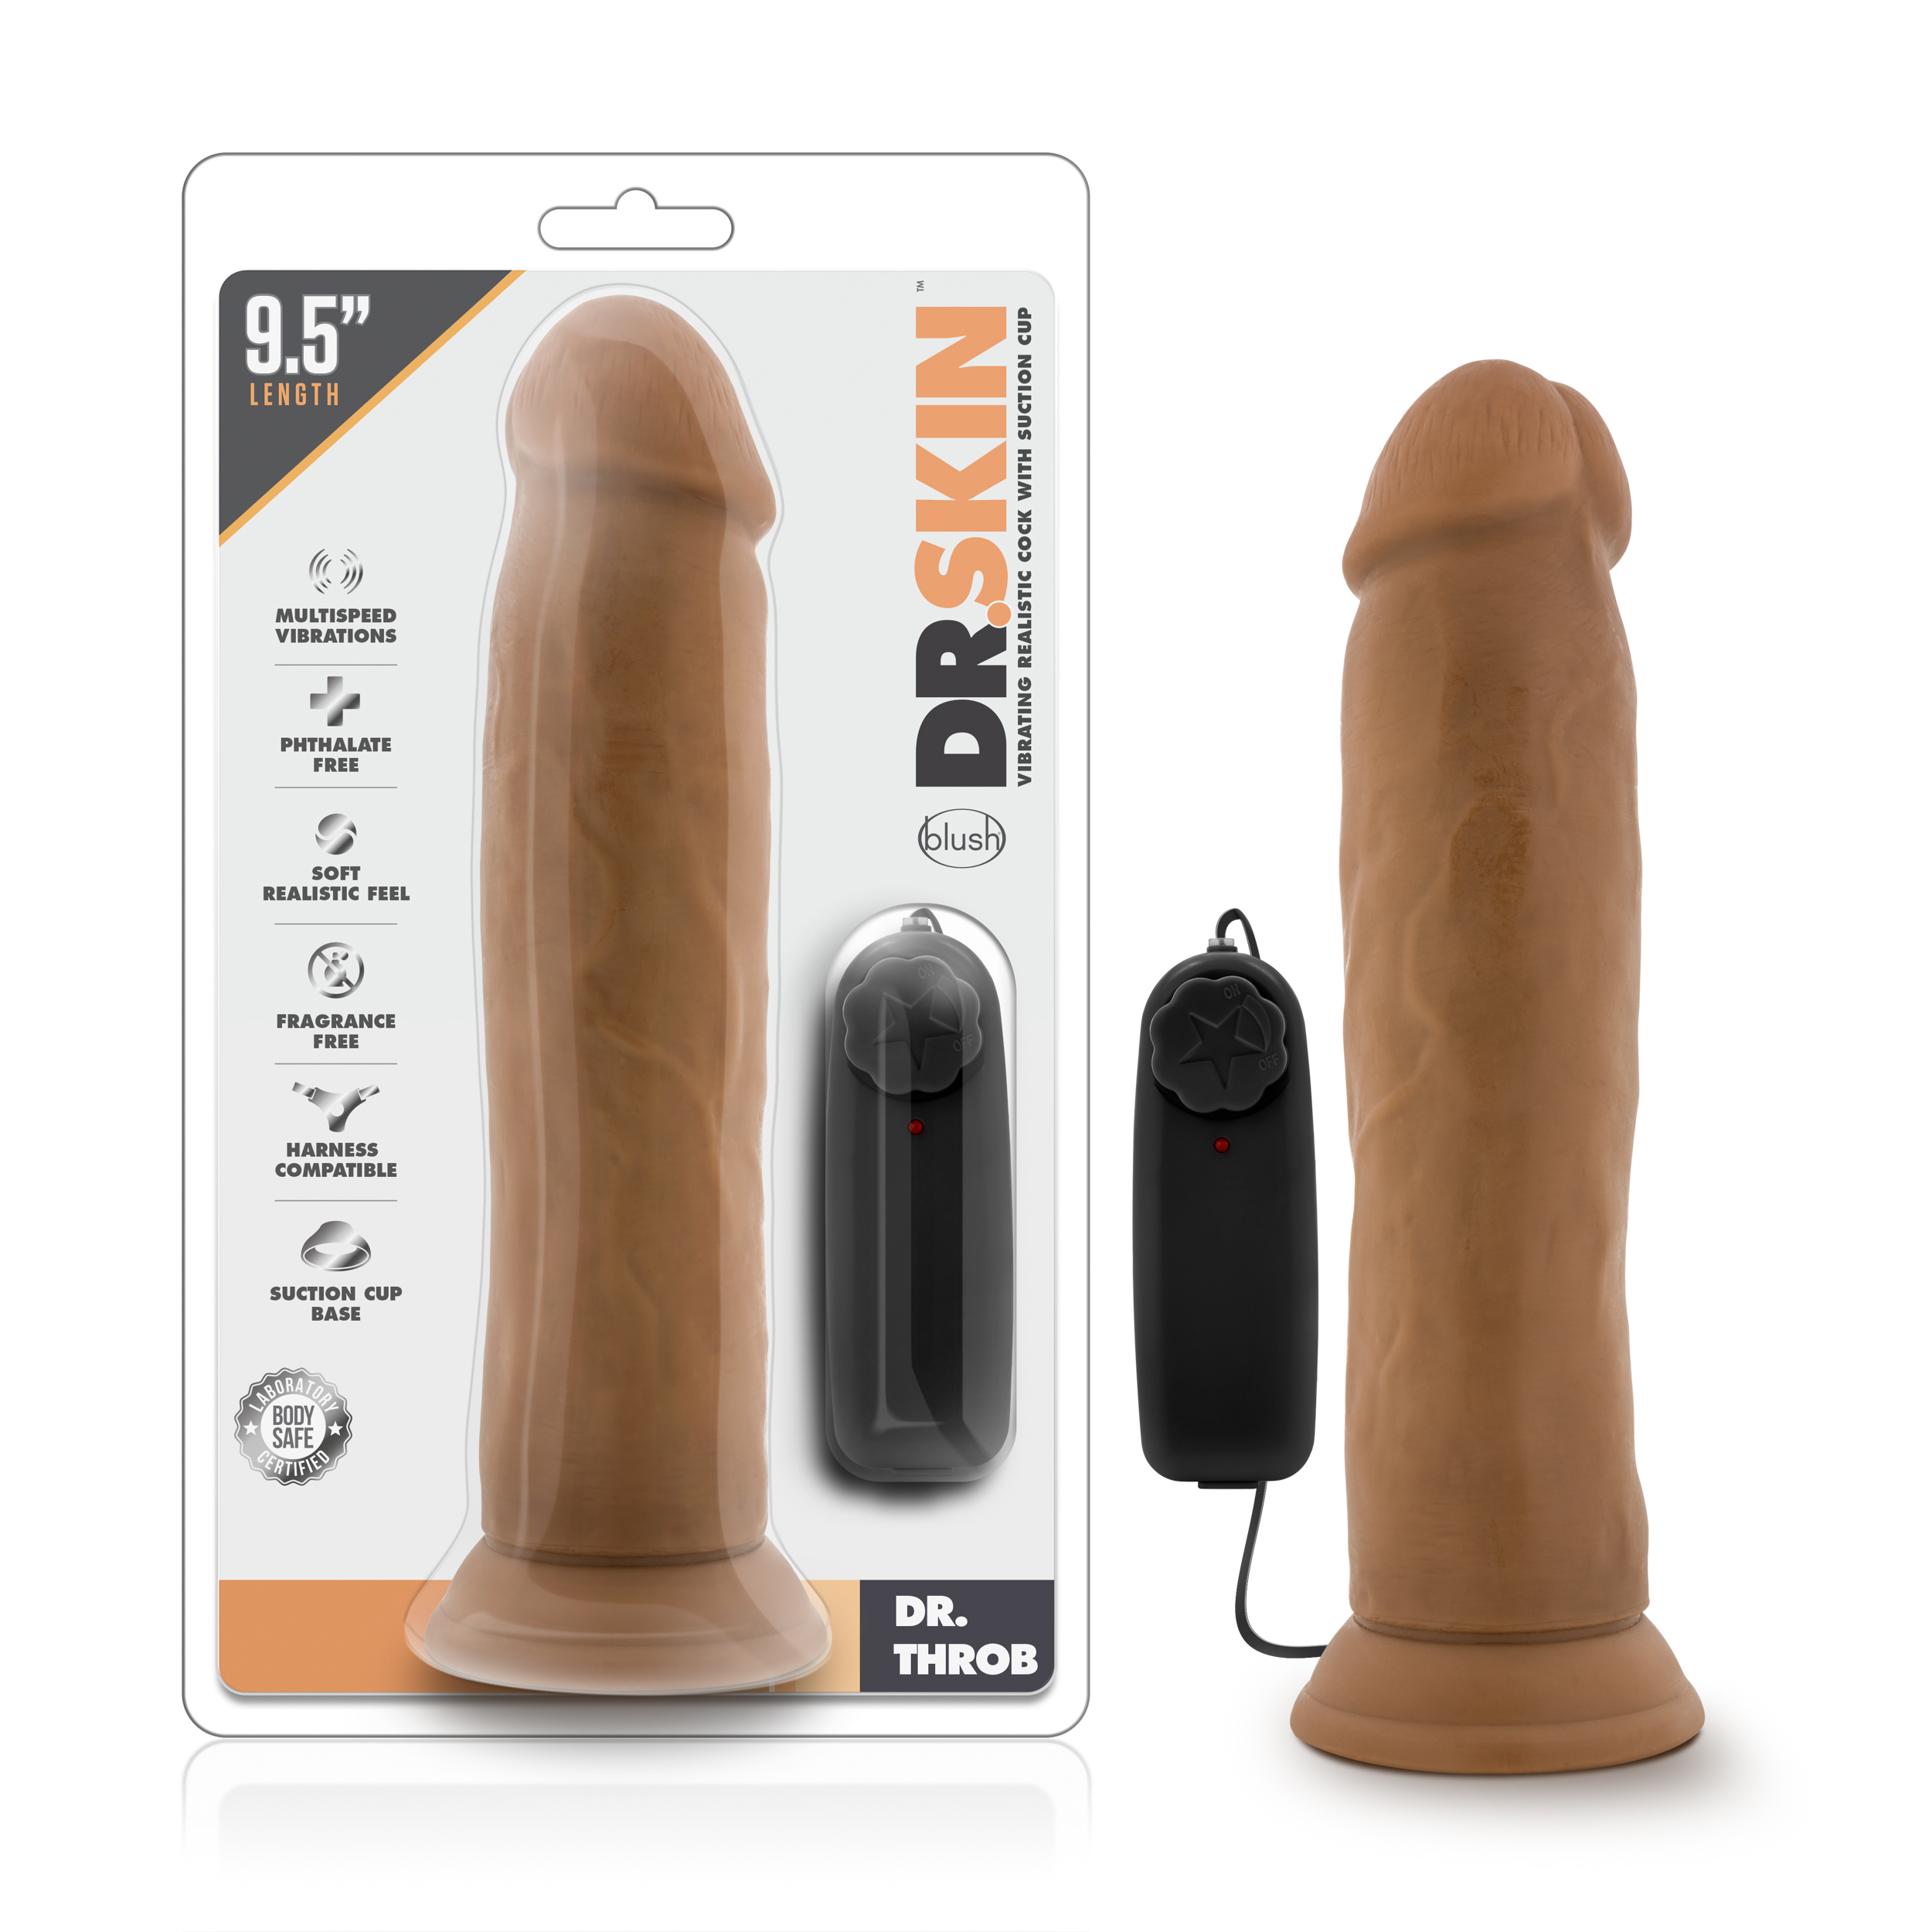 Dr. Skin - Dr. Throb - 9.5 Inch Vibrating Realistic Cock with Suction Cup - Mocha